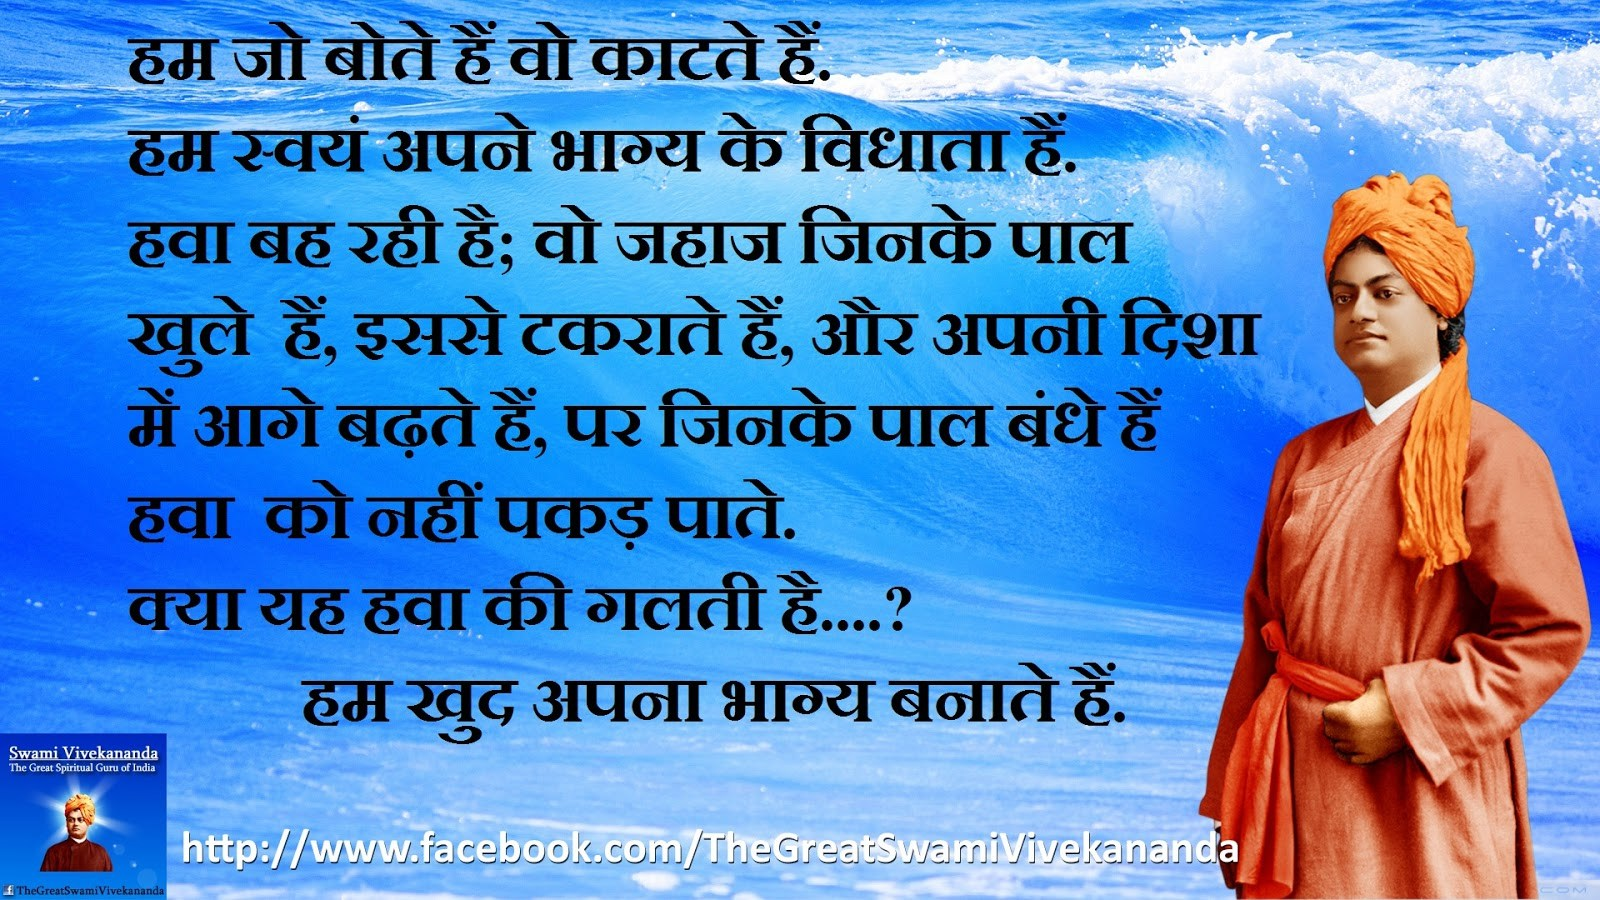 swami vivekananda quotes in marathi quotesgram hd quotes of